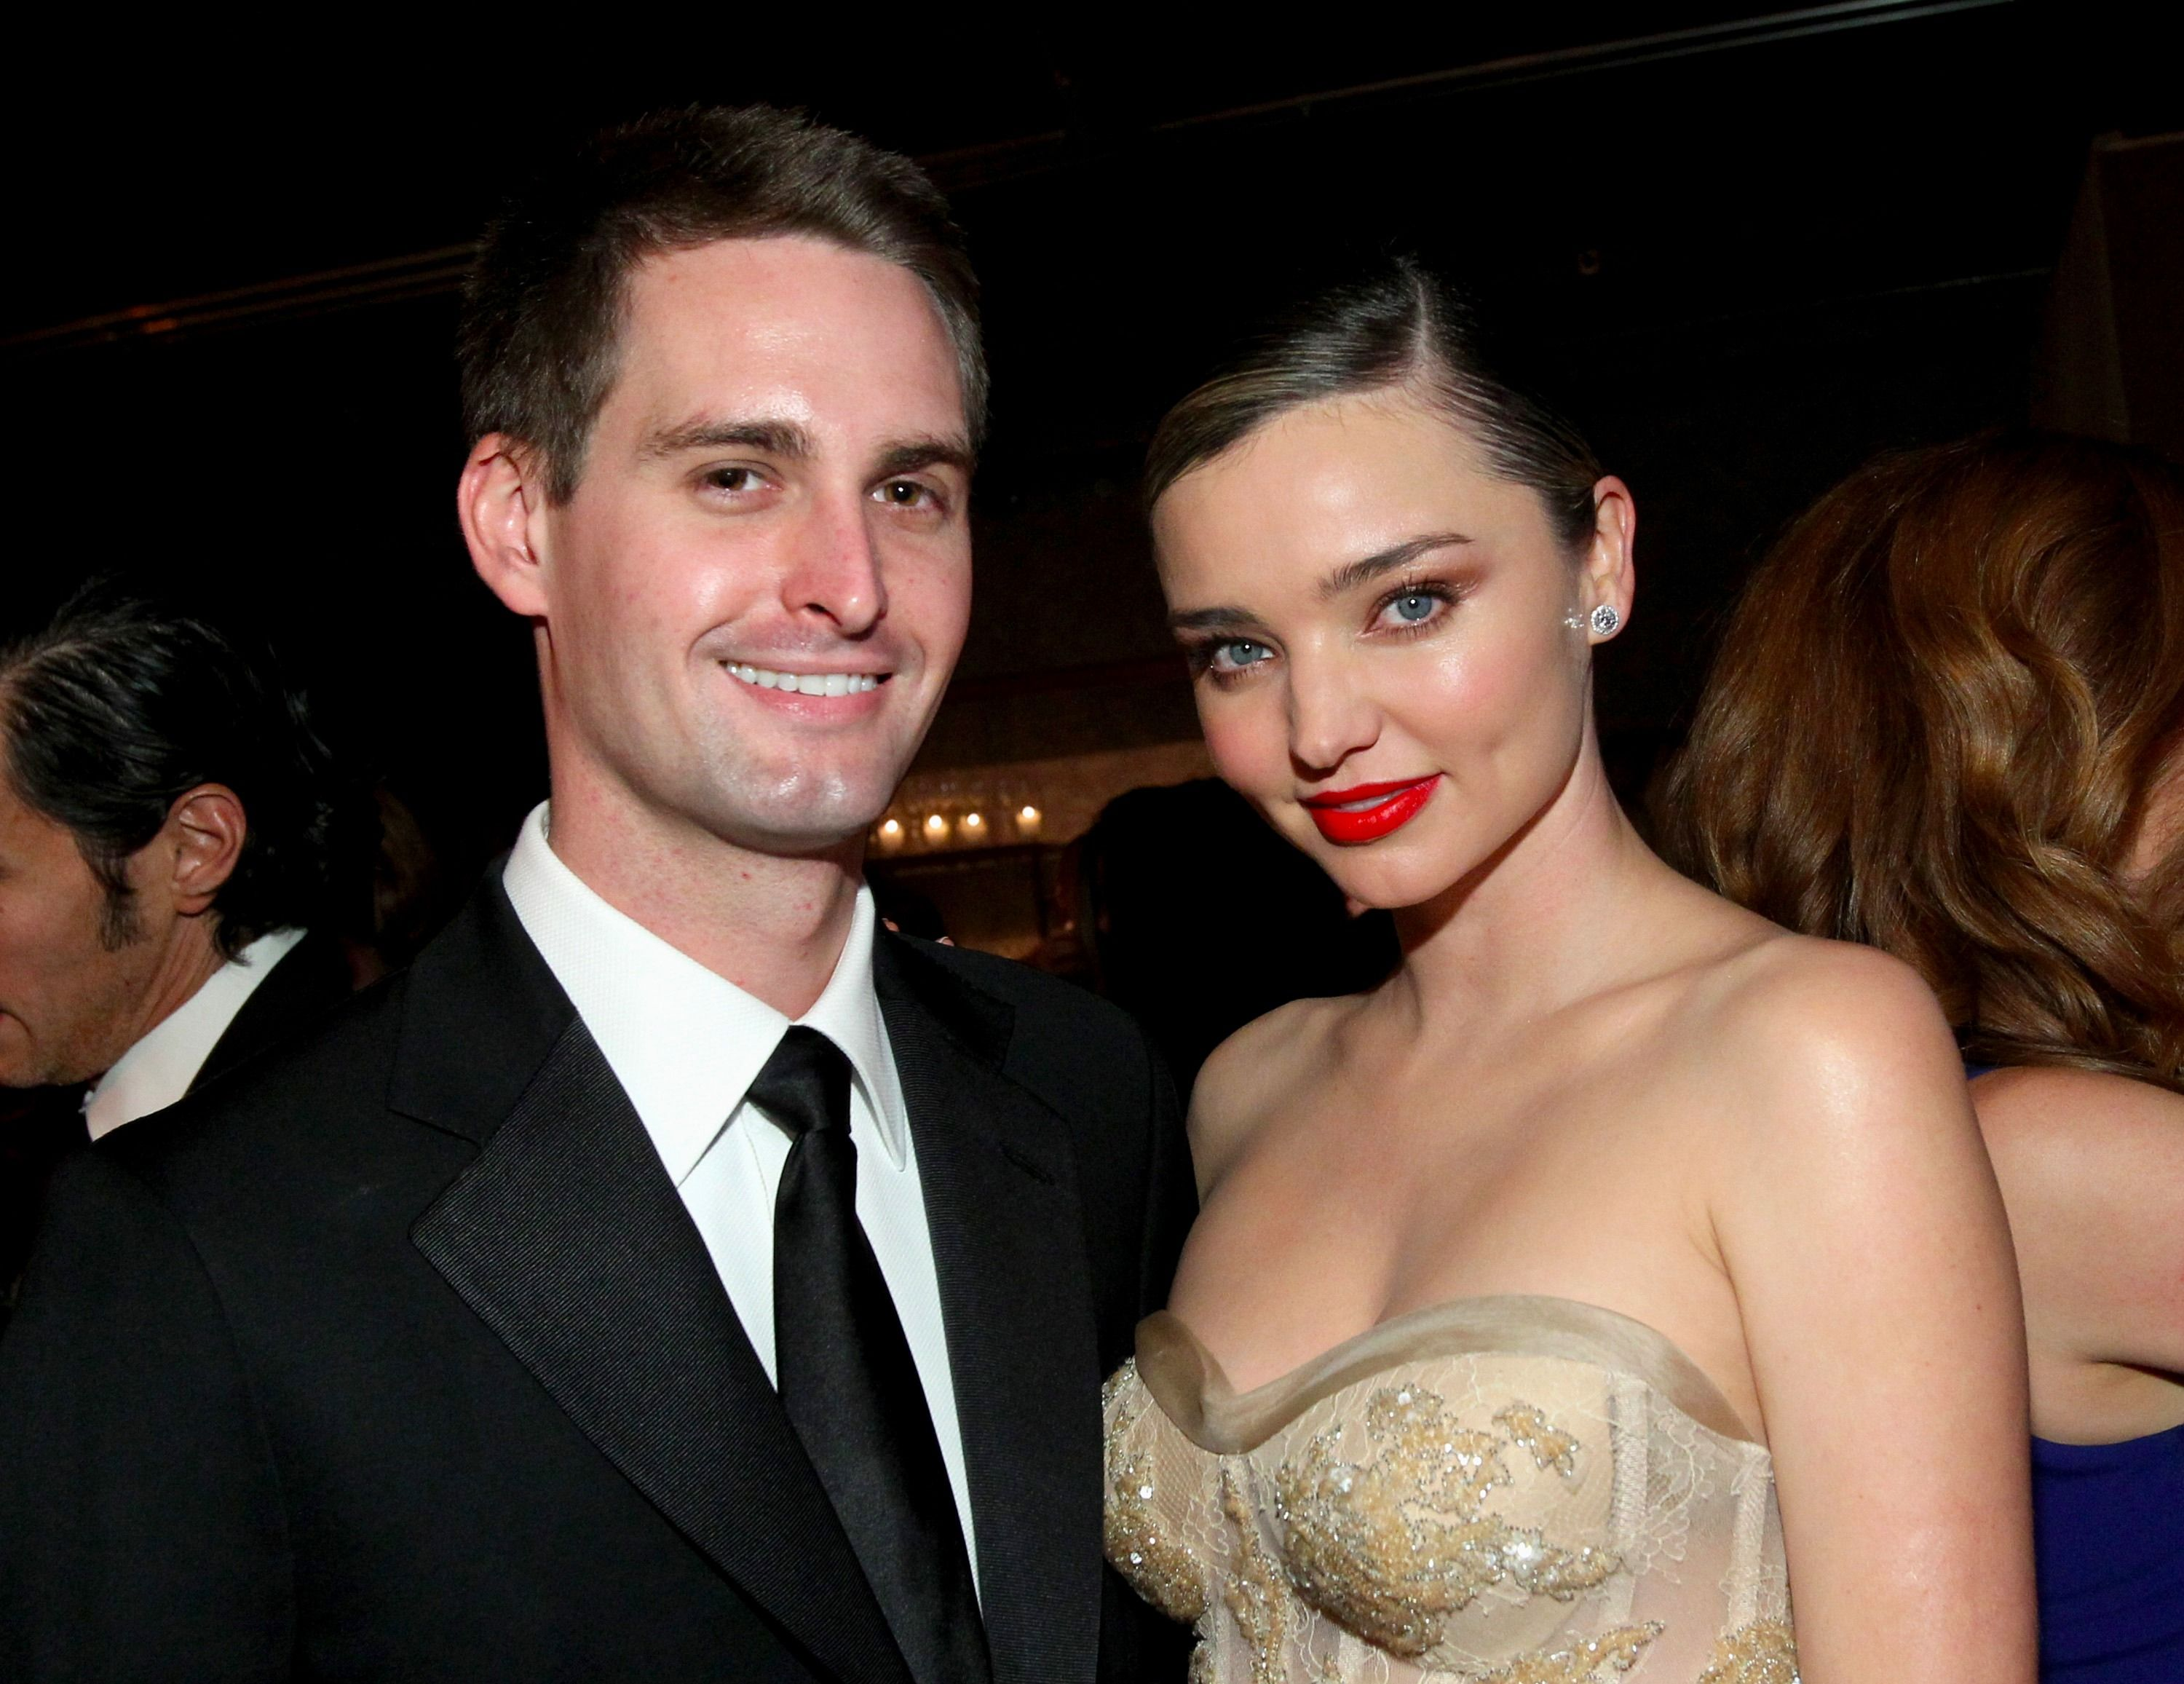 Miranda Kerr has finally revealed her Grace Kelly-esque Dior wedding dress